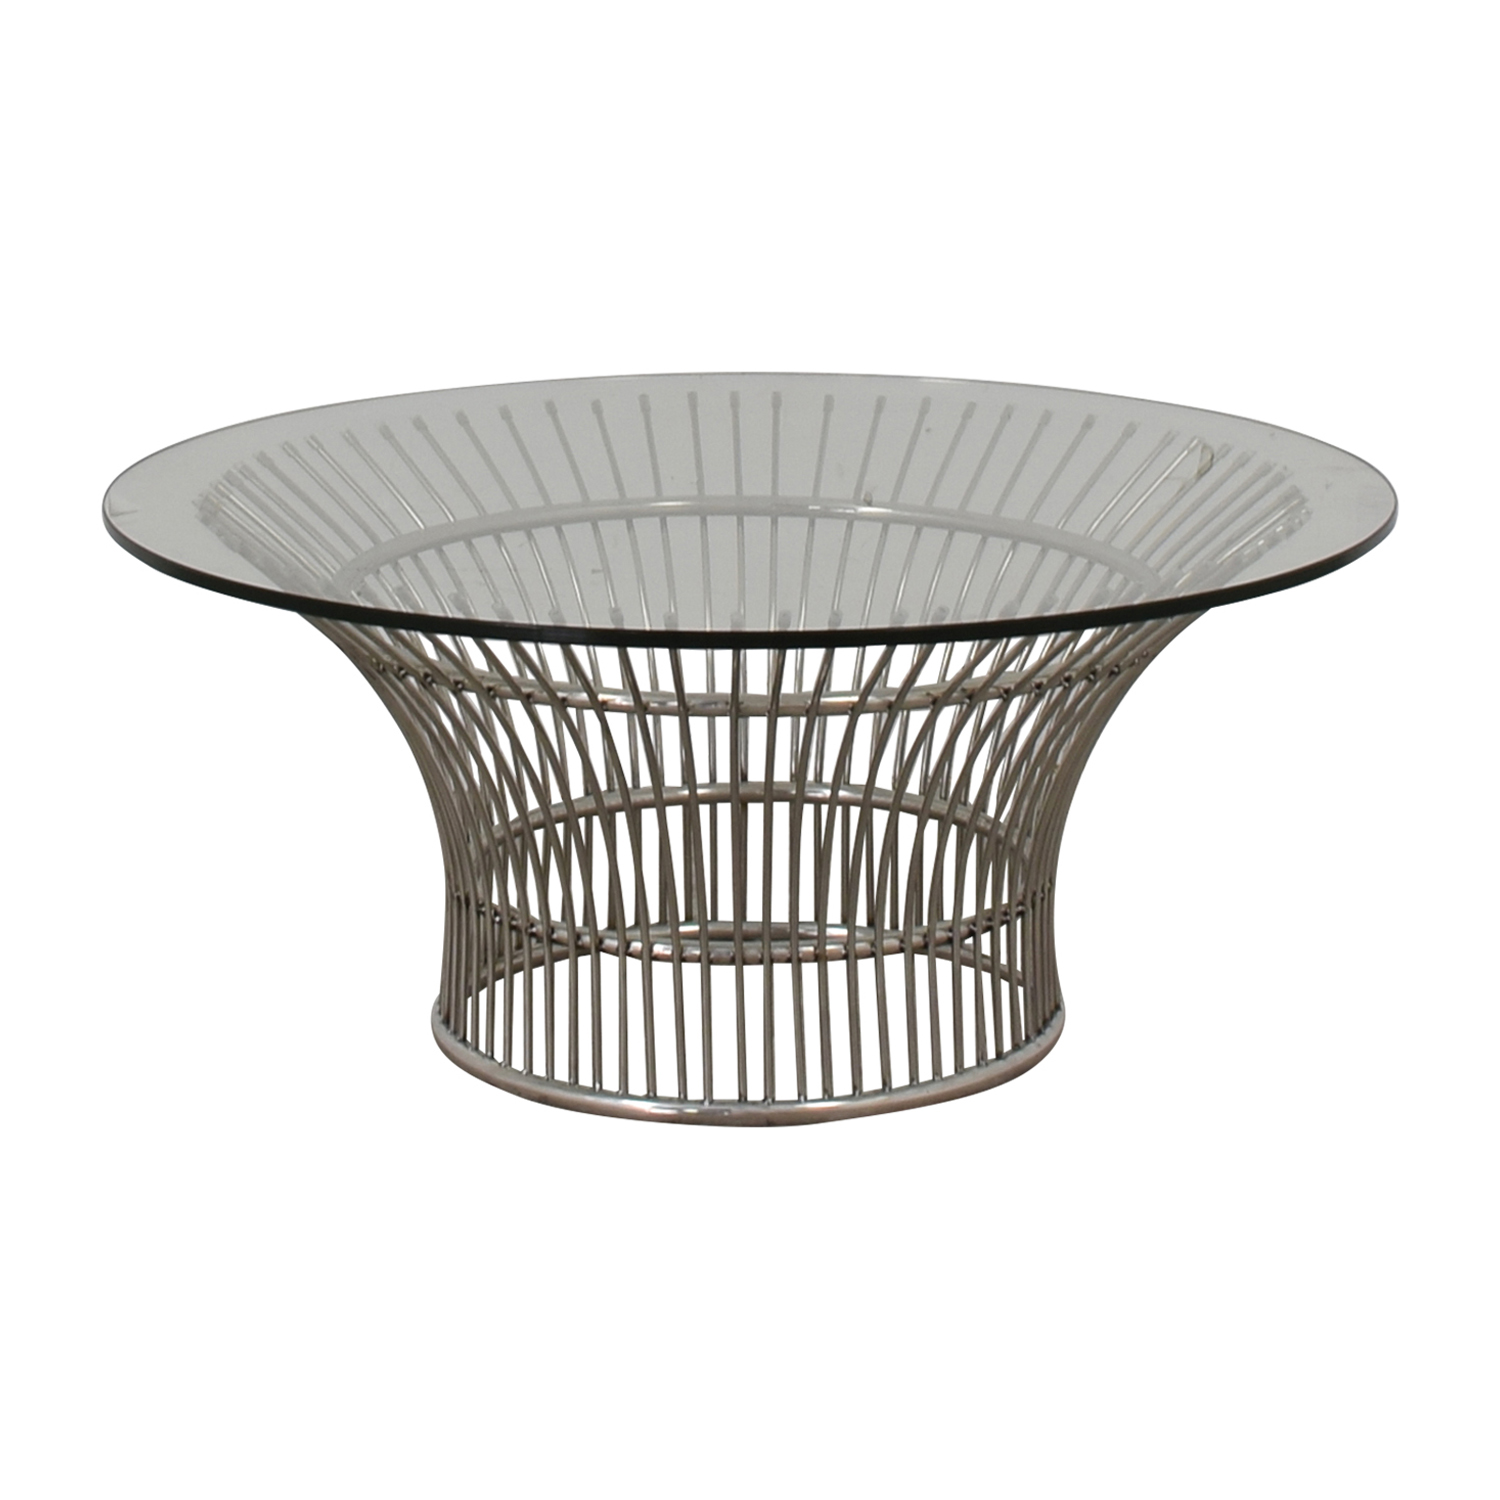 off platner style round glass and chrome coffee table tables cassie accent with barn door console marble dining furniture hourglass threshold entryway dresser outdoor buffet